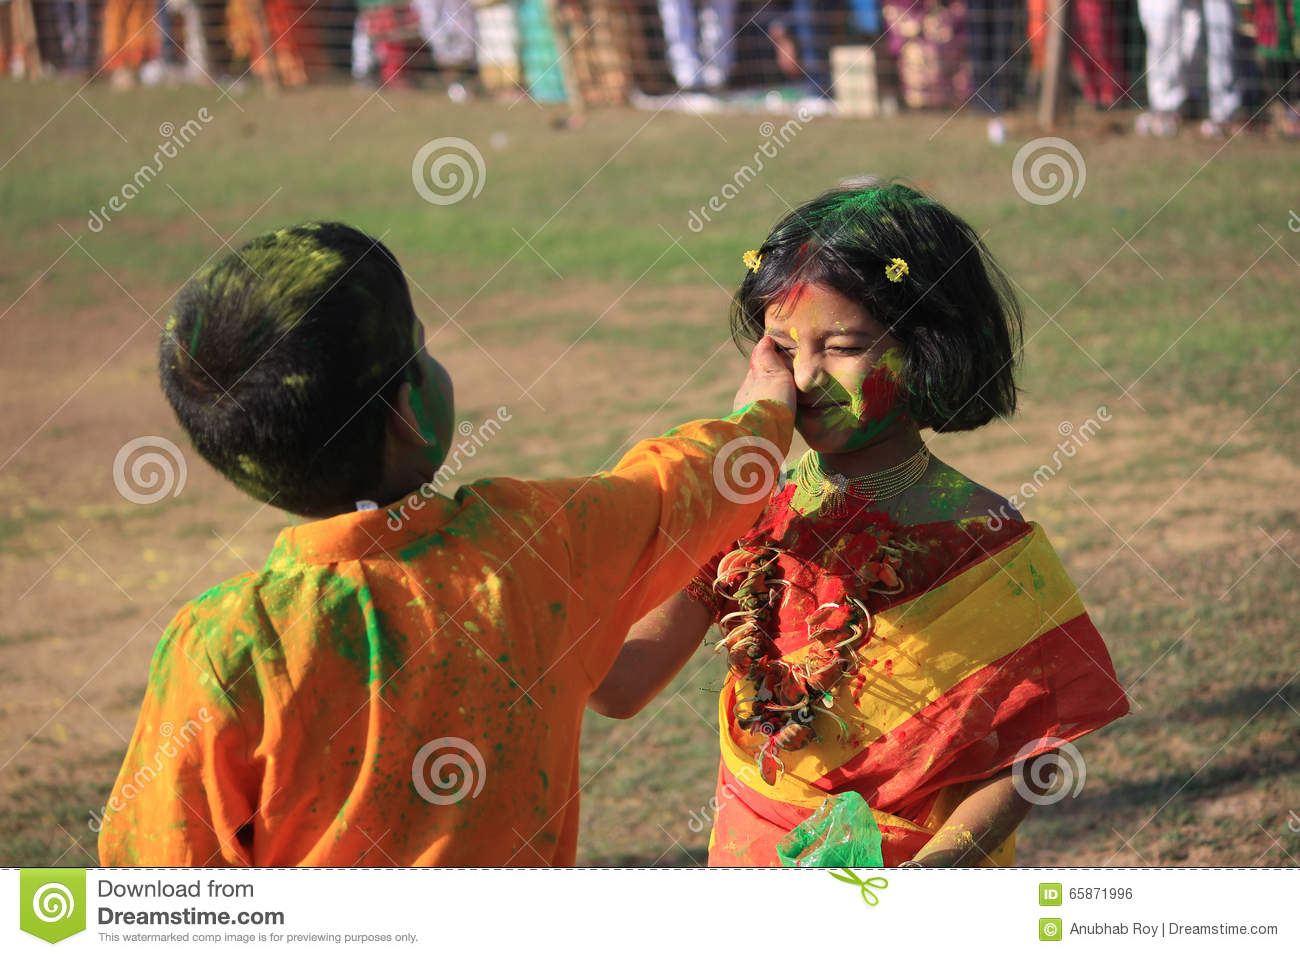 Children are enjoying Holi, the color festival of India.